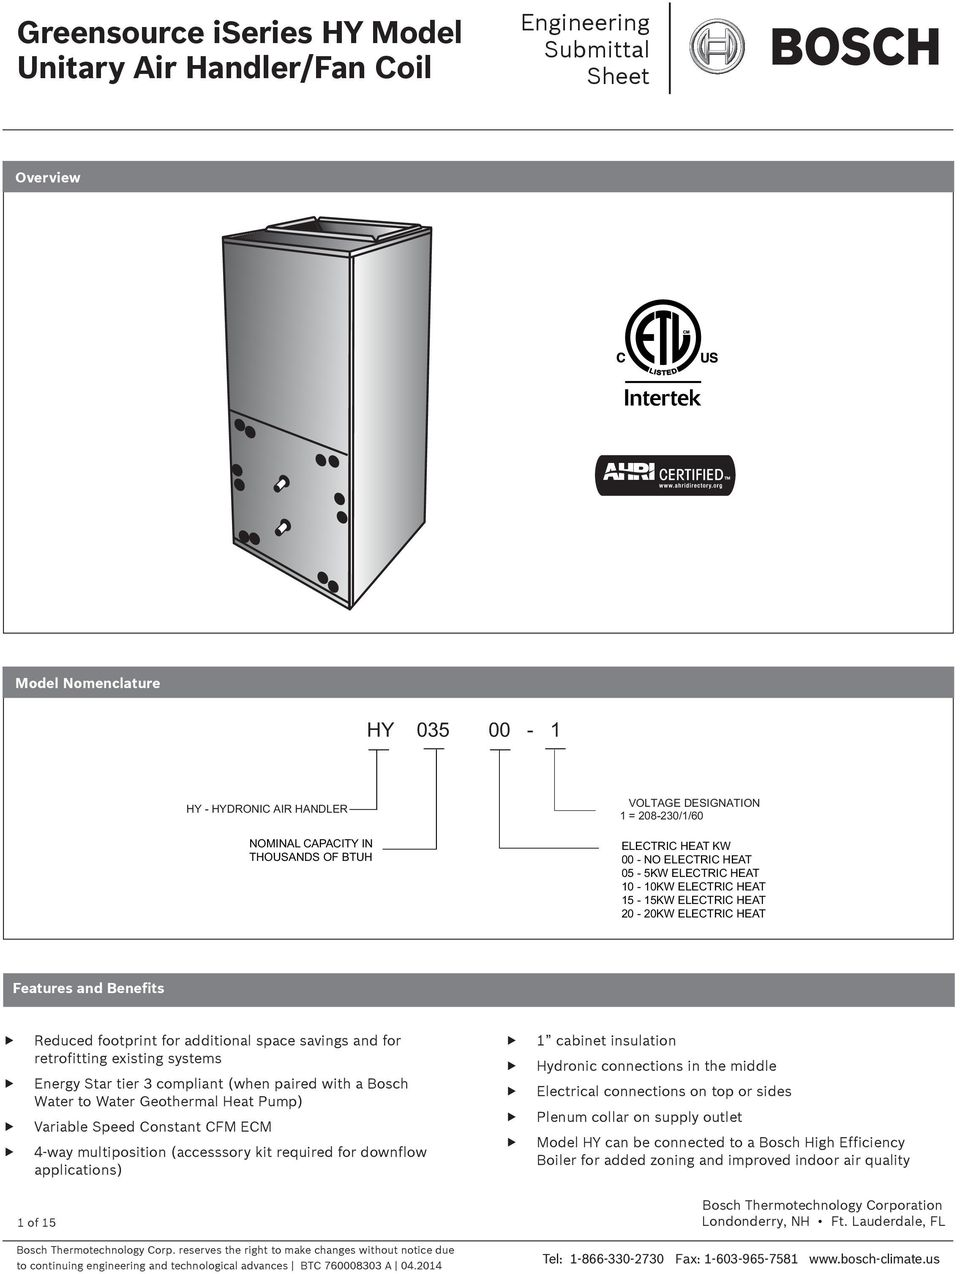 Greensource iseries HY Model Unitary Air Handler/Fan Coil - PDF